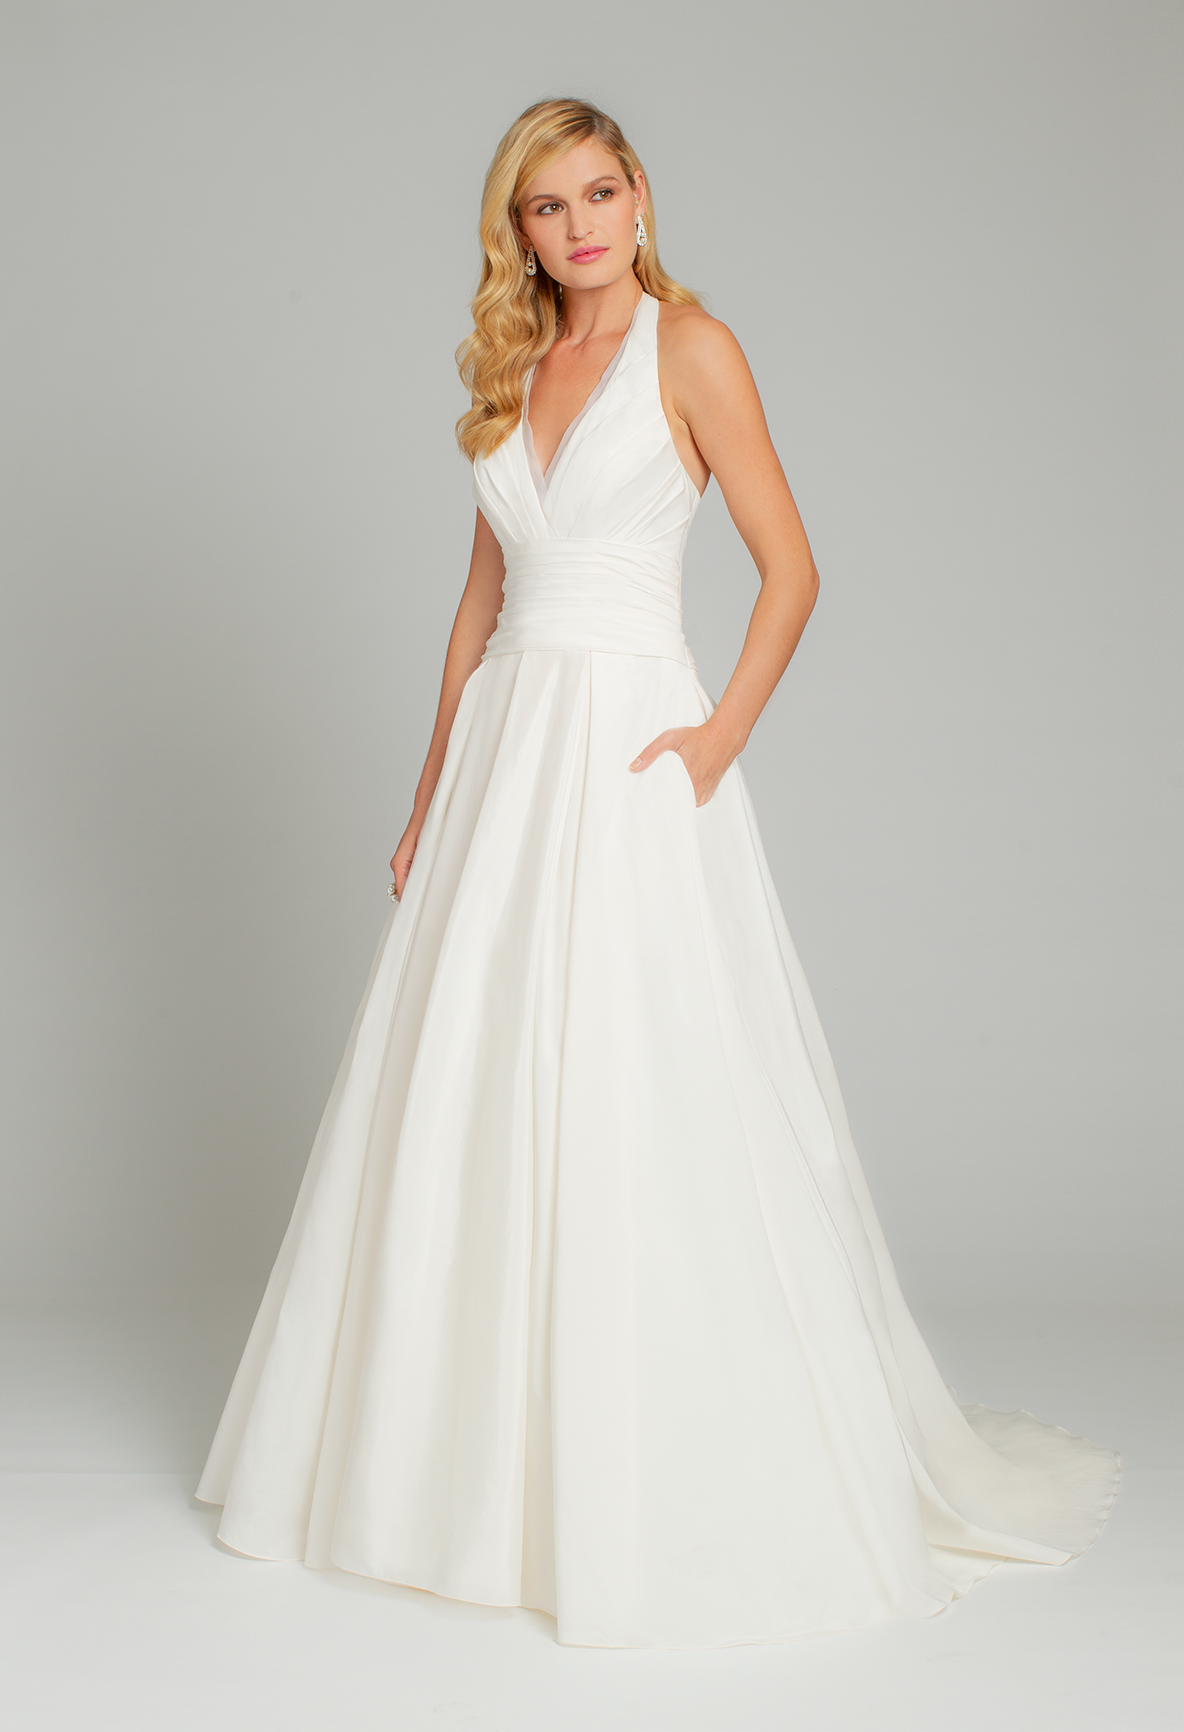 69bb3ef8485 Soft illusions create the most romantic allure you have always wanted on  your wedding day!